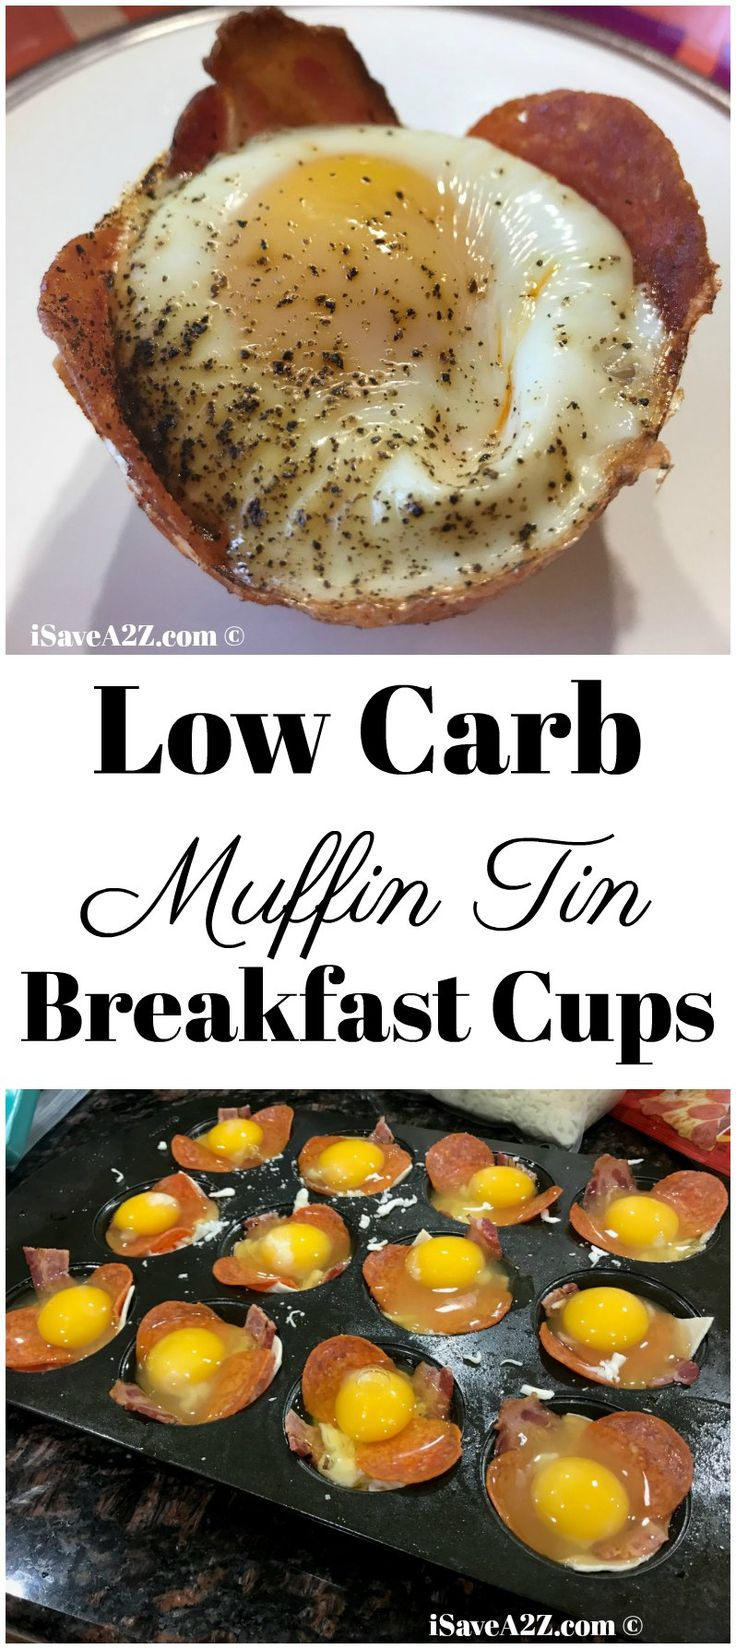 Low Carb Breakfast Cups Made in a Muffin Tin - Keto Friendly recipes via @isavea2z